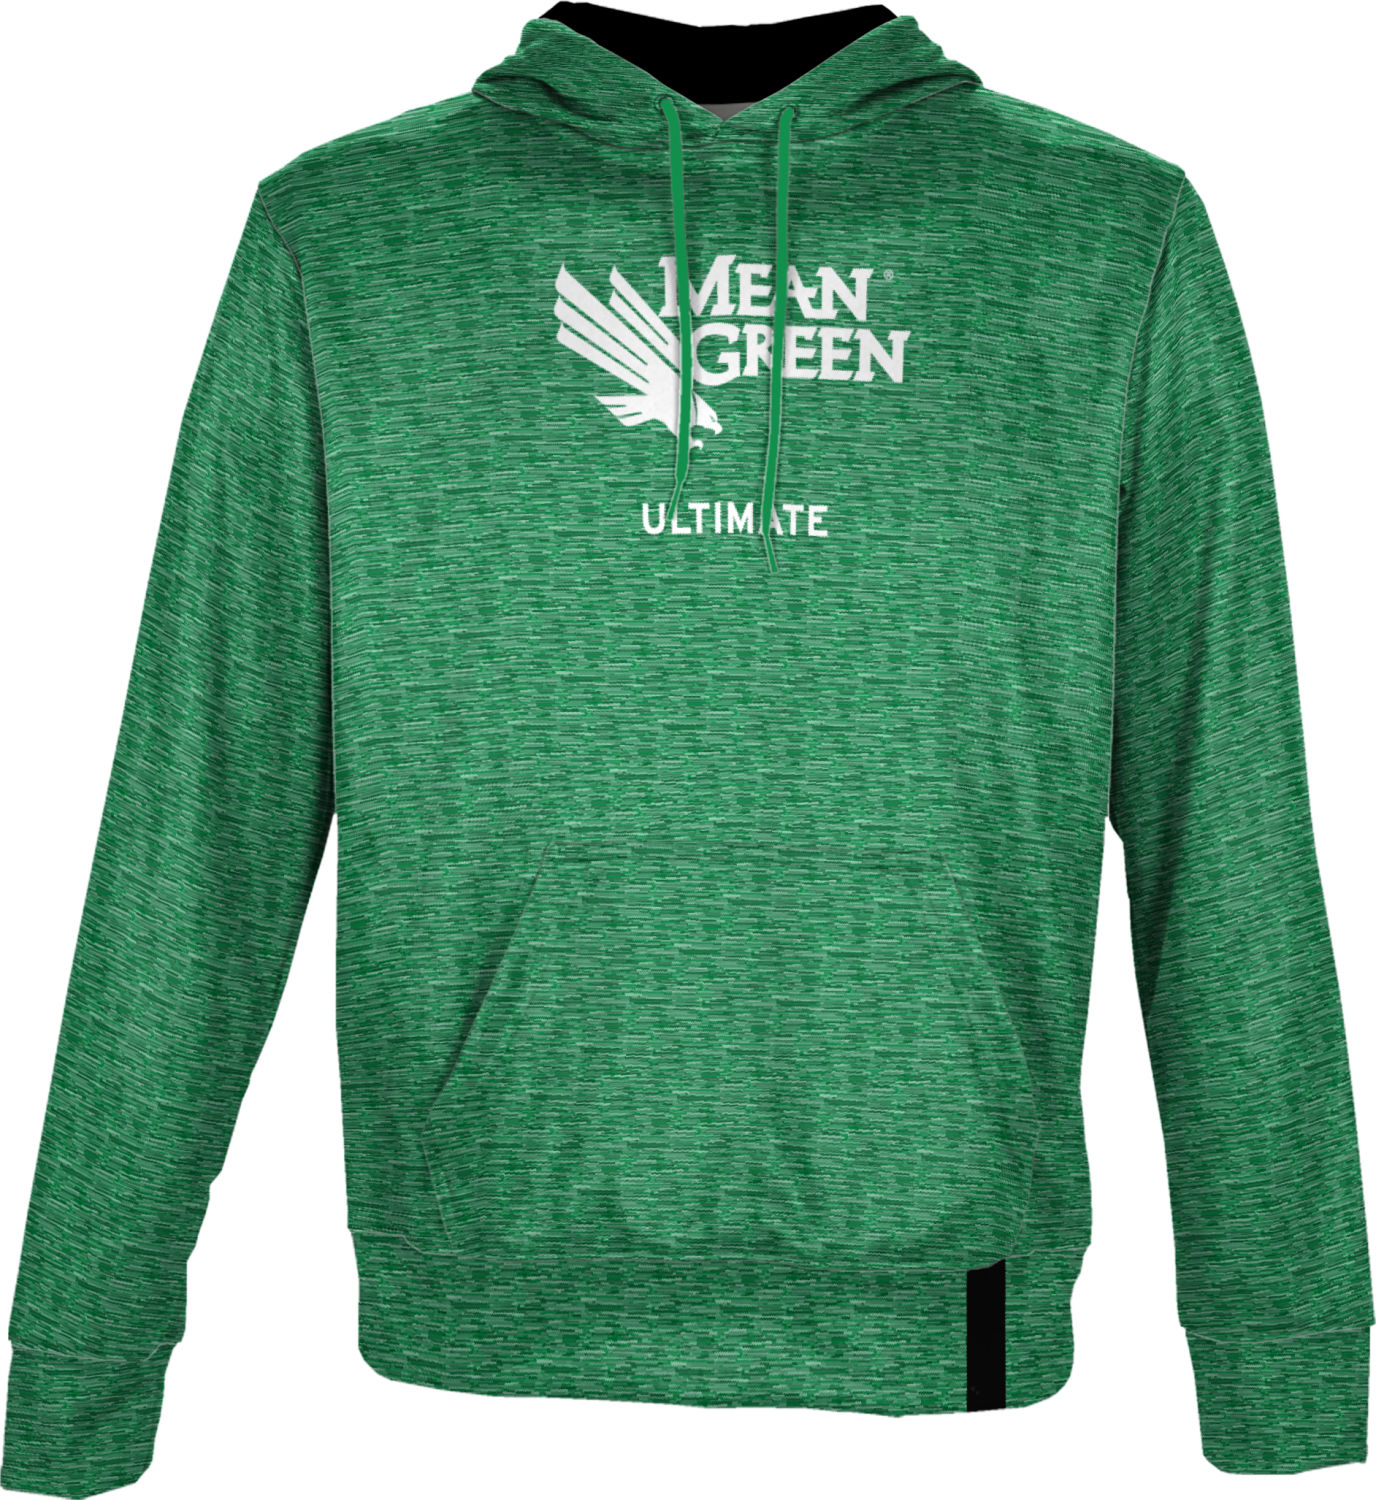 ProSphere Ultimate Youth Unisex Pullover Hoodie